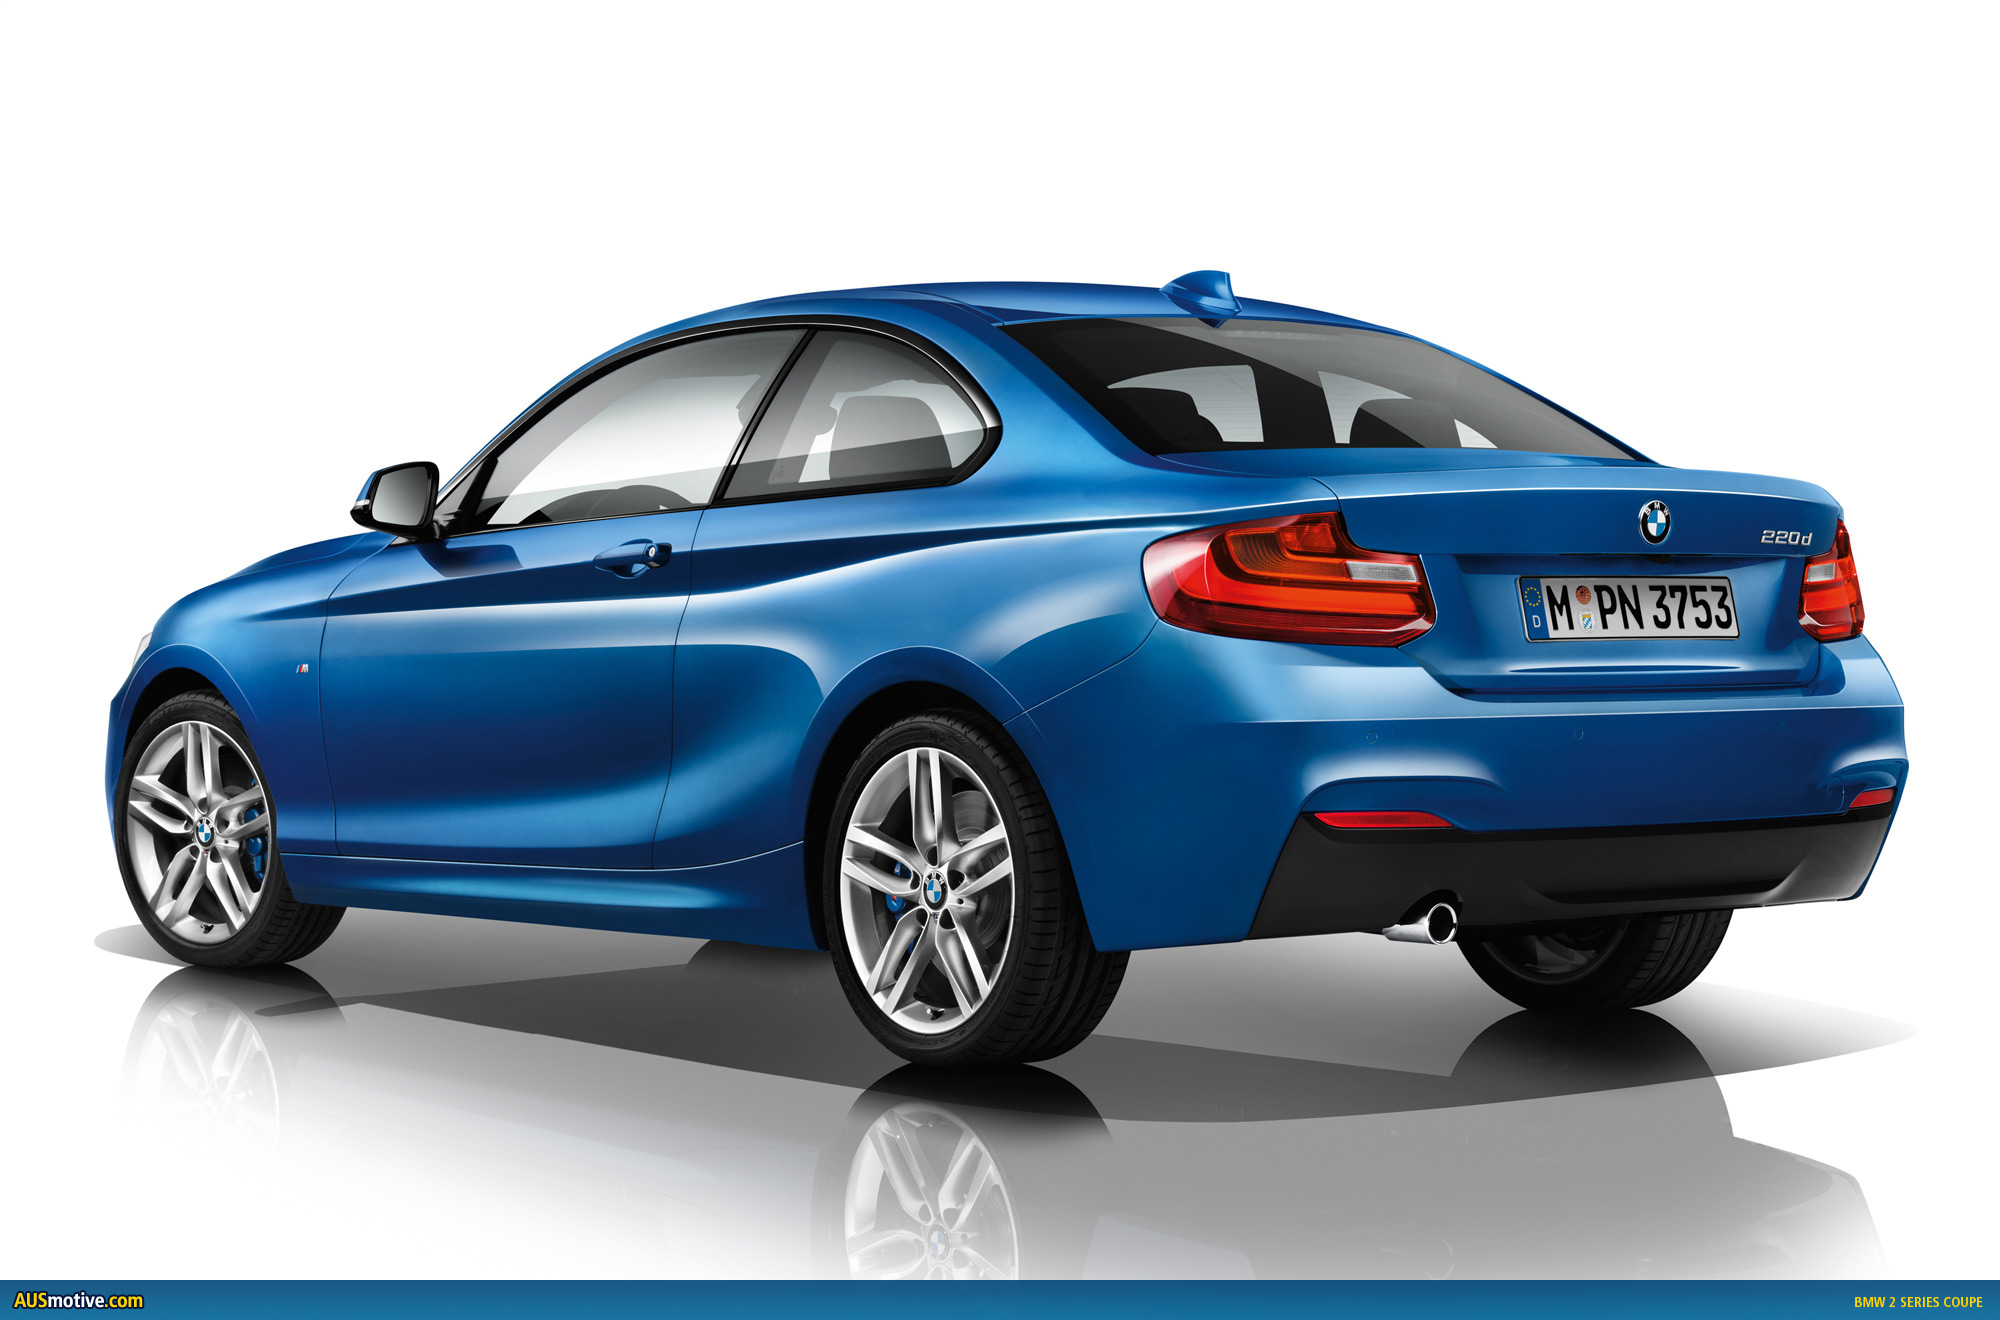 bmw australia to price m235i from 79 900. Black Bedroom Furniture Sets. Home Design Ideas